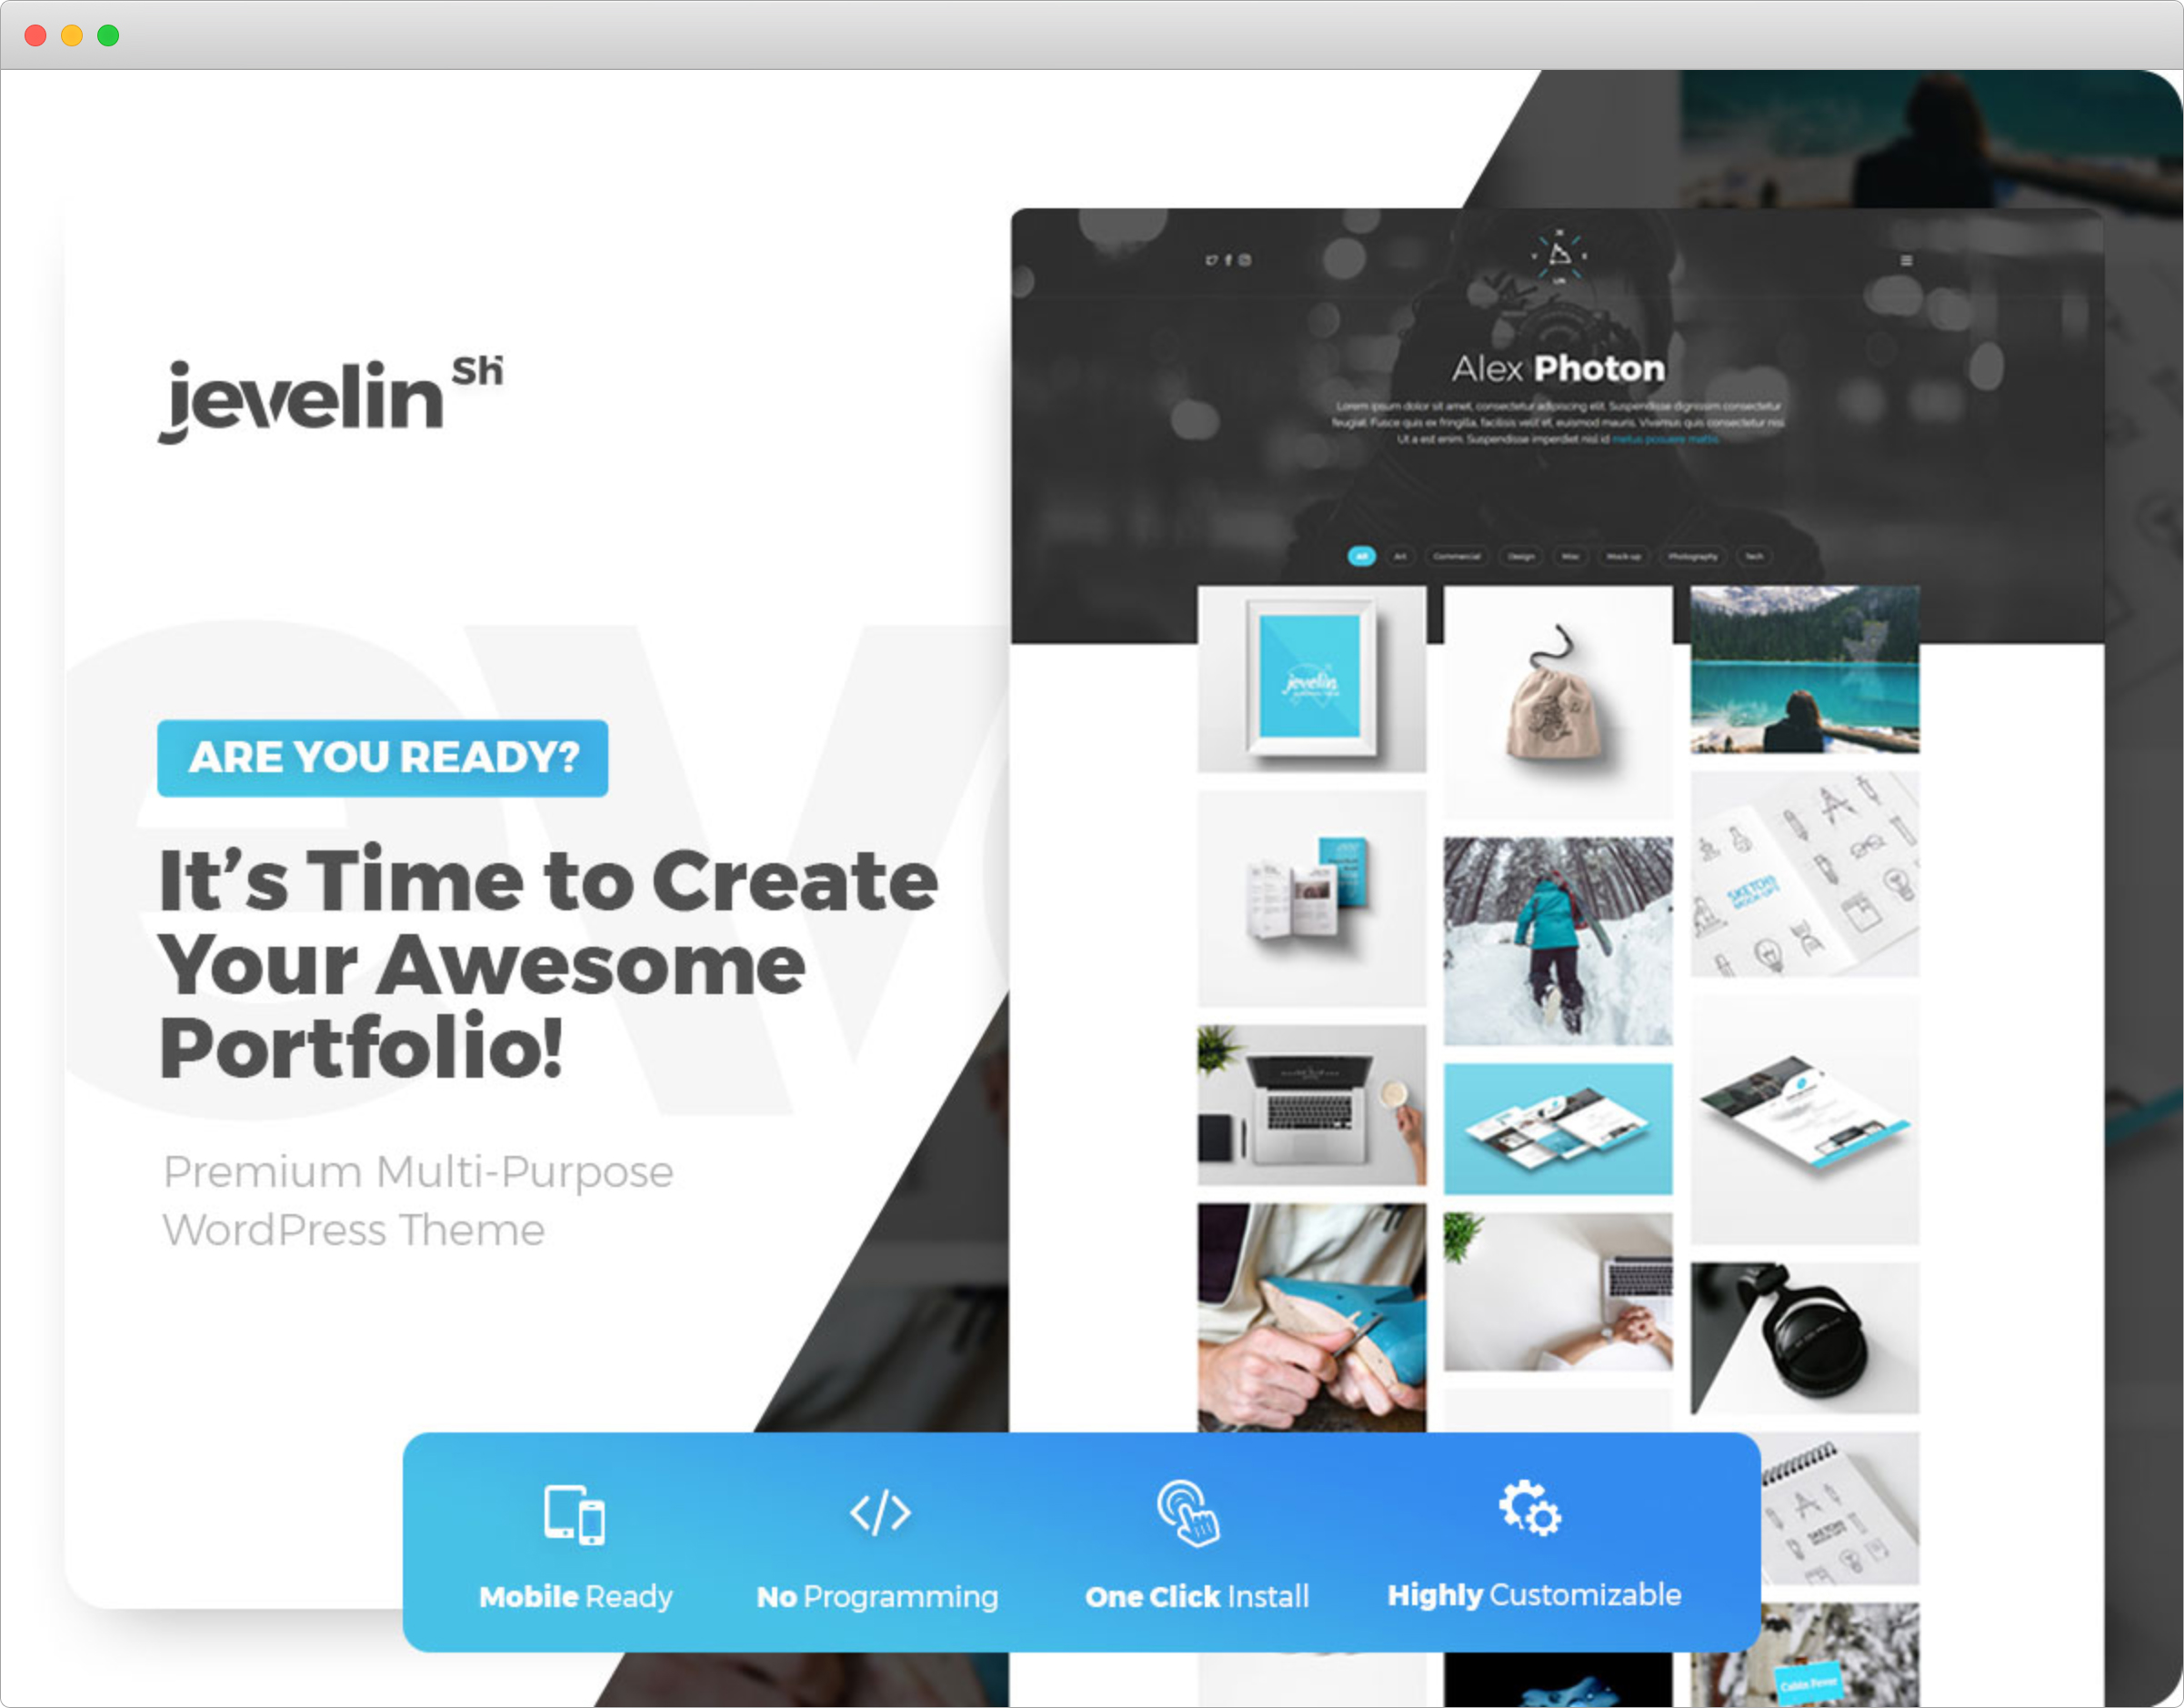 Jevelin WordPress Theme with Cool Grid Layout